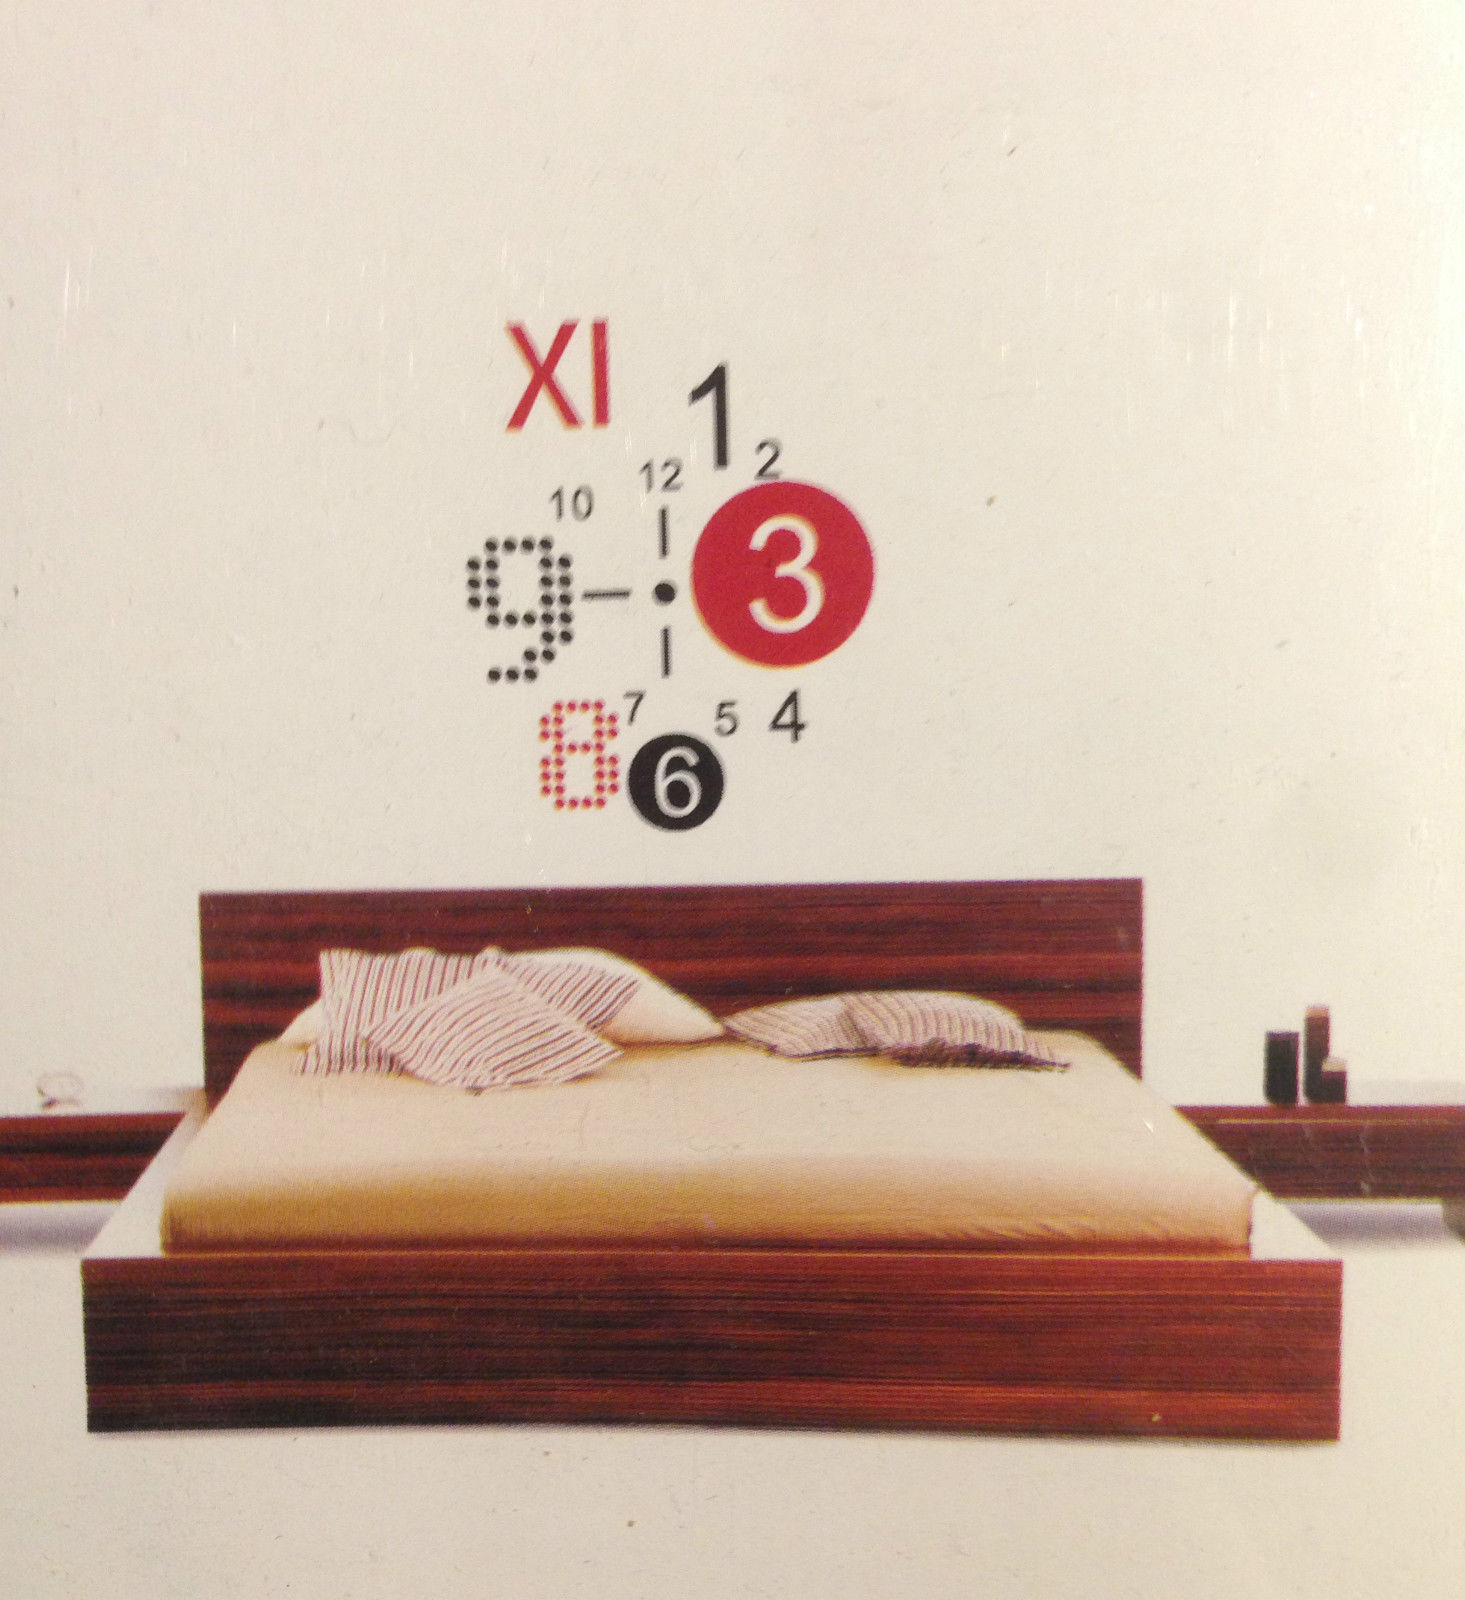 xl wandtattoo uhr wanduhr mit uhrwerk f r wohnzimmer k che. Black Bedroom Furniture Sets. Home Design Ideas